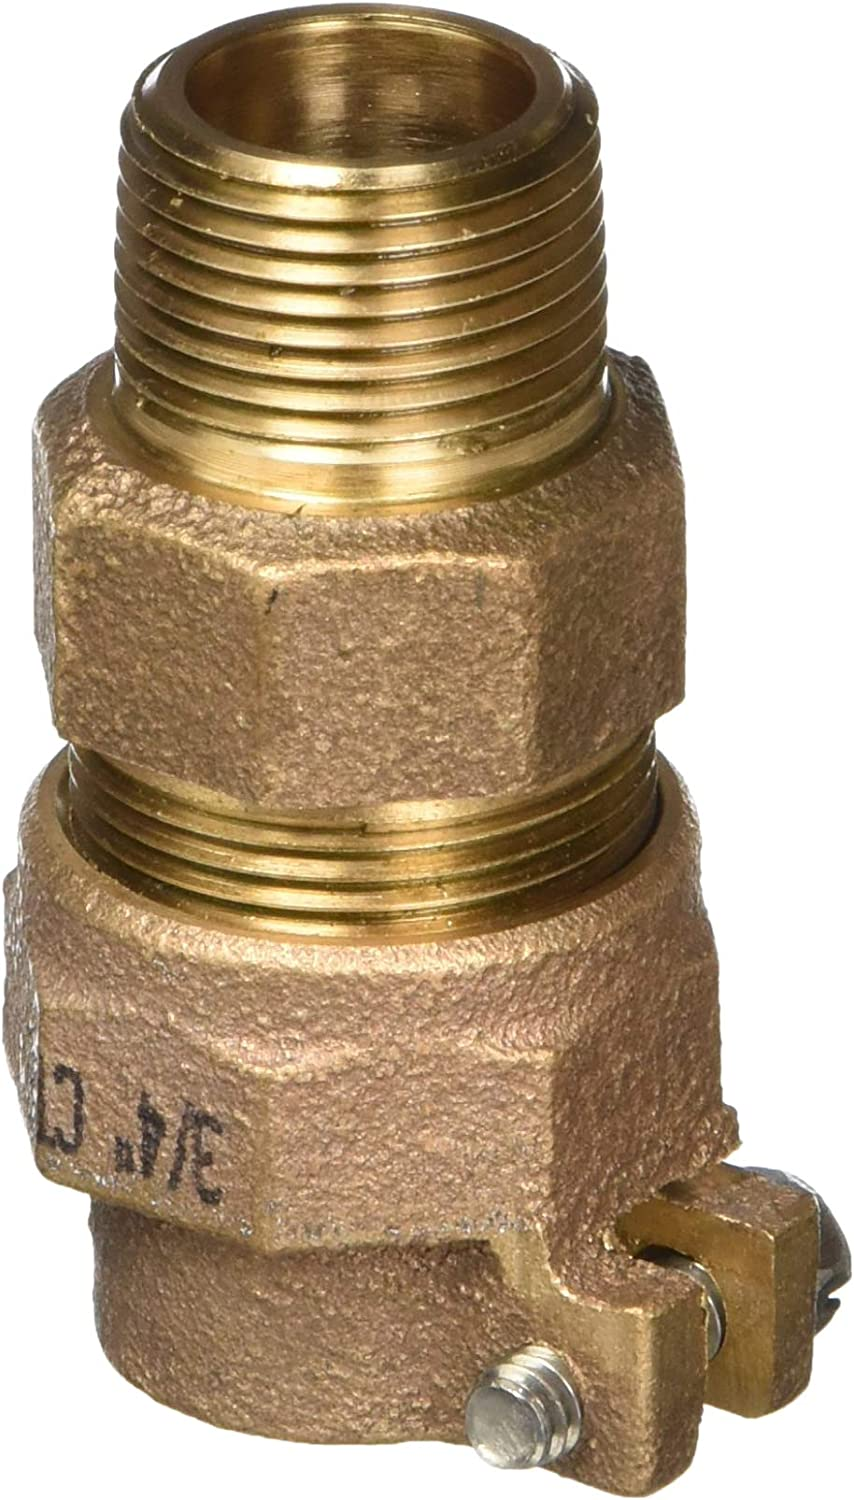 A Y Mcdonald 74753 22 Water Service Coupling Pipe Fittings Amazon Com